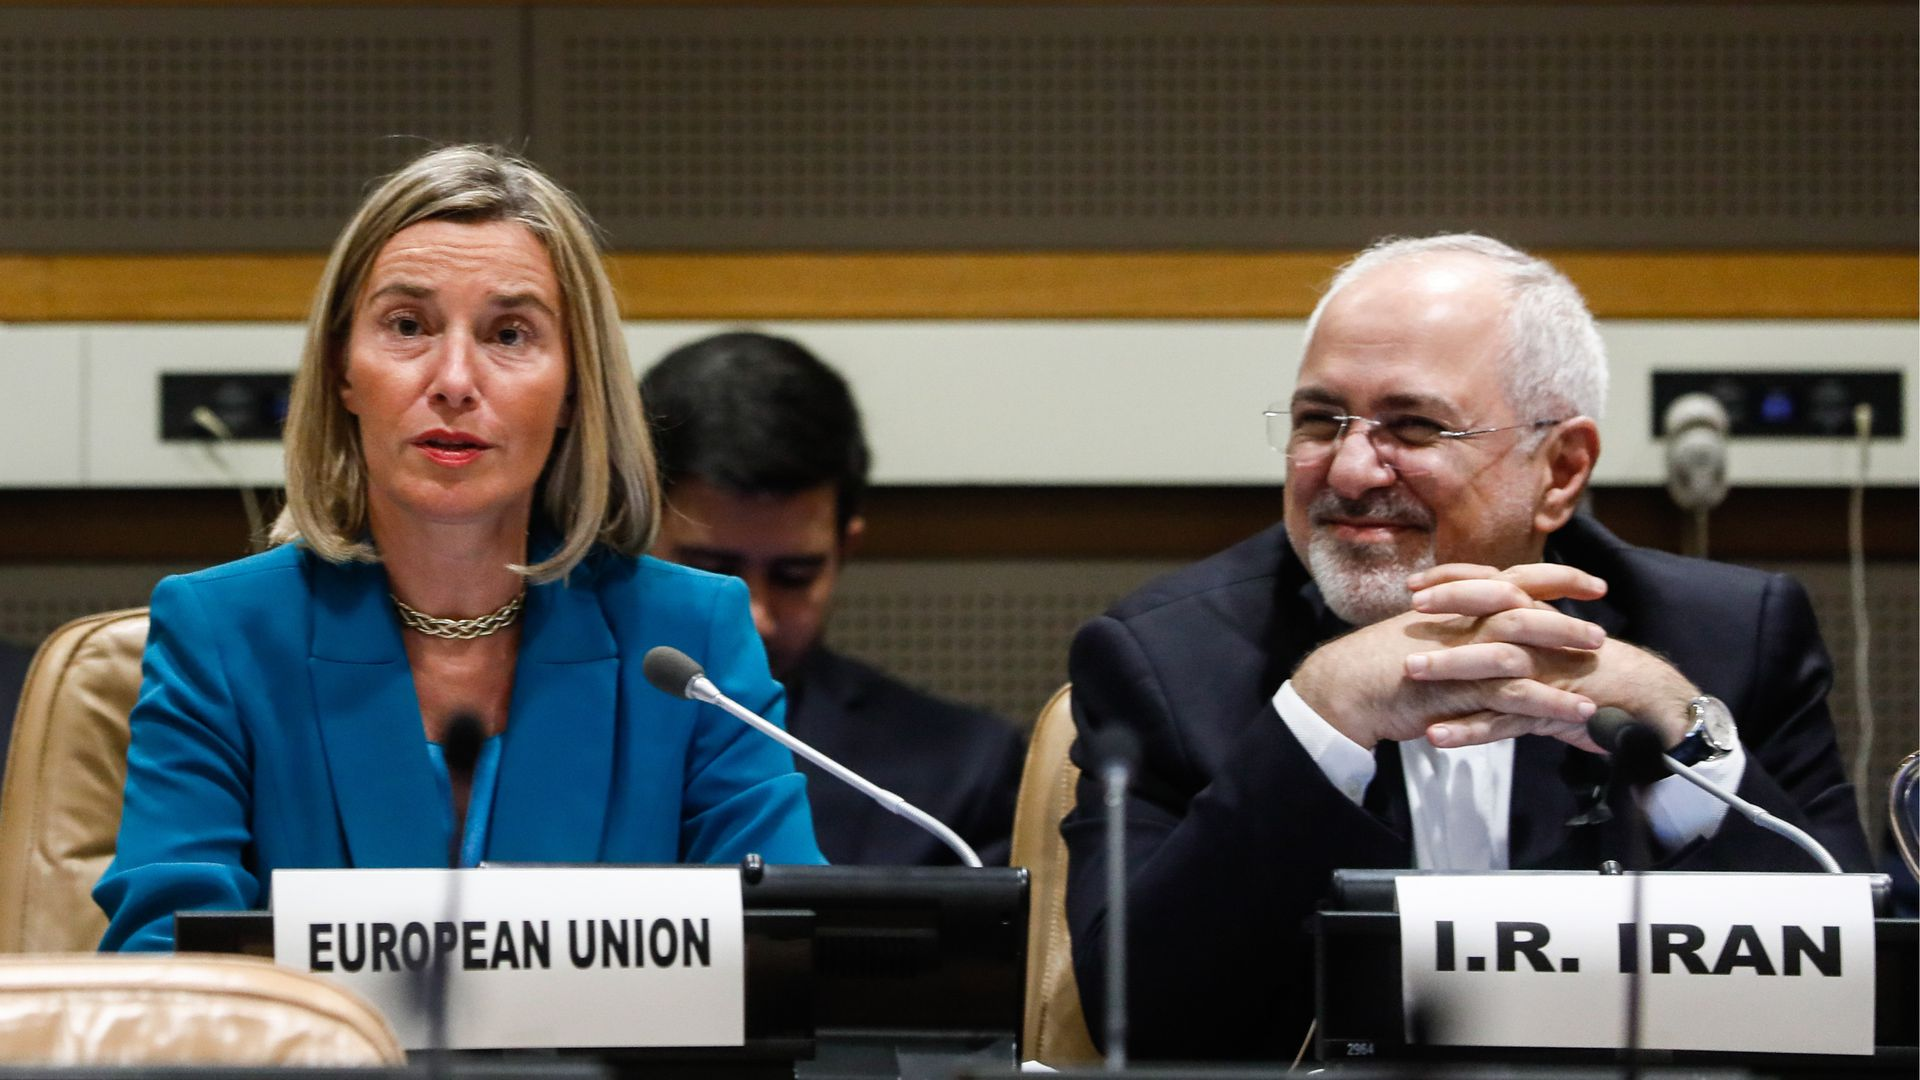 EU foreign minister sitting next to Iran foreign minister